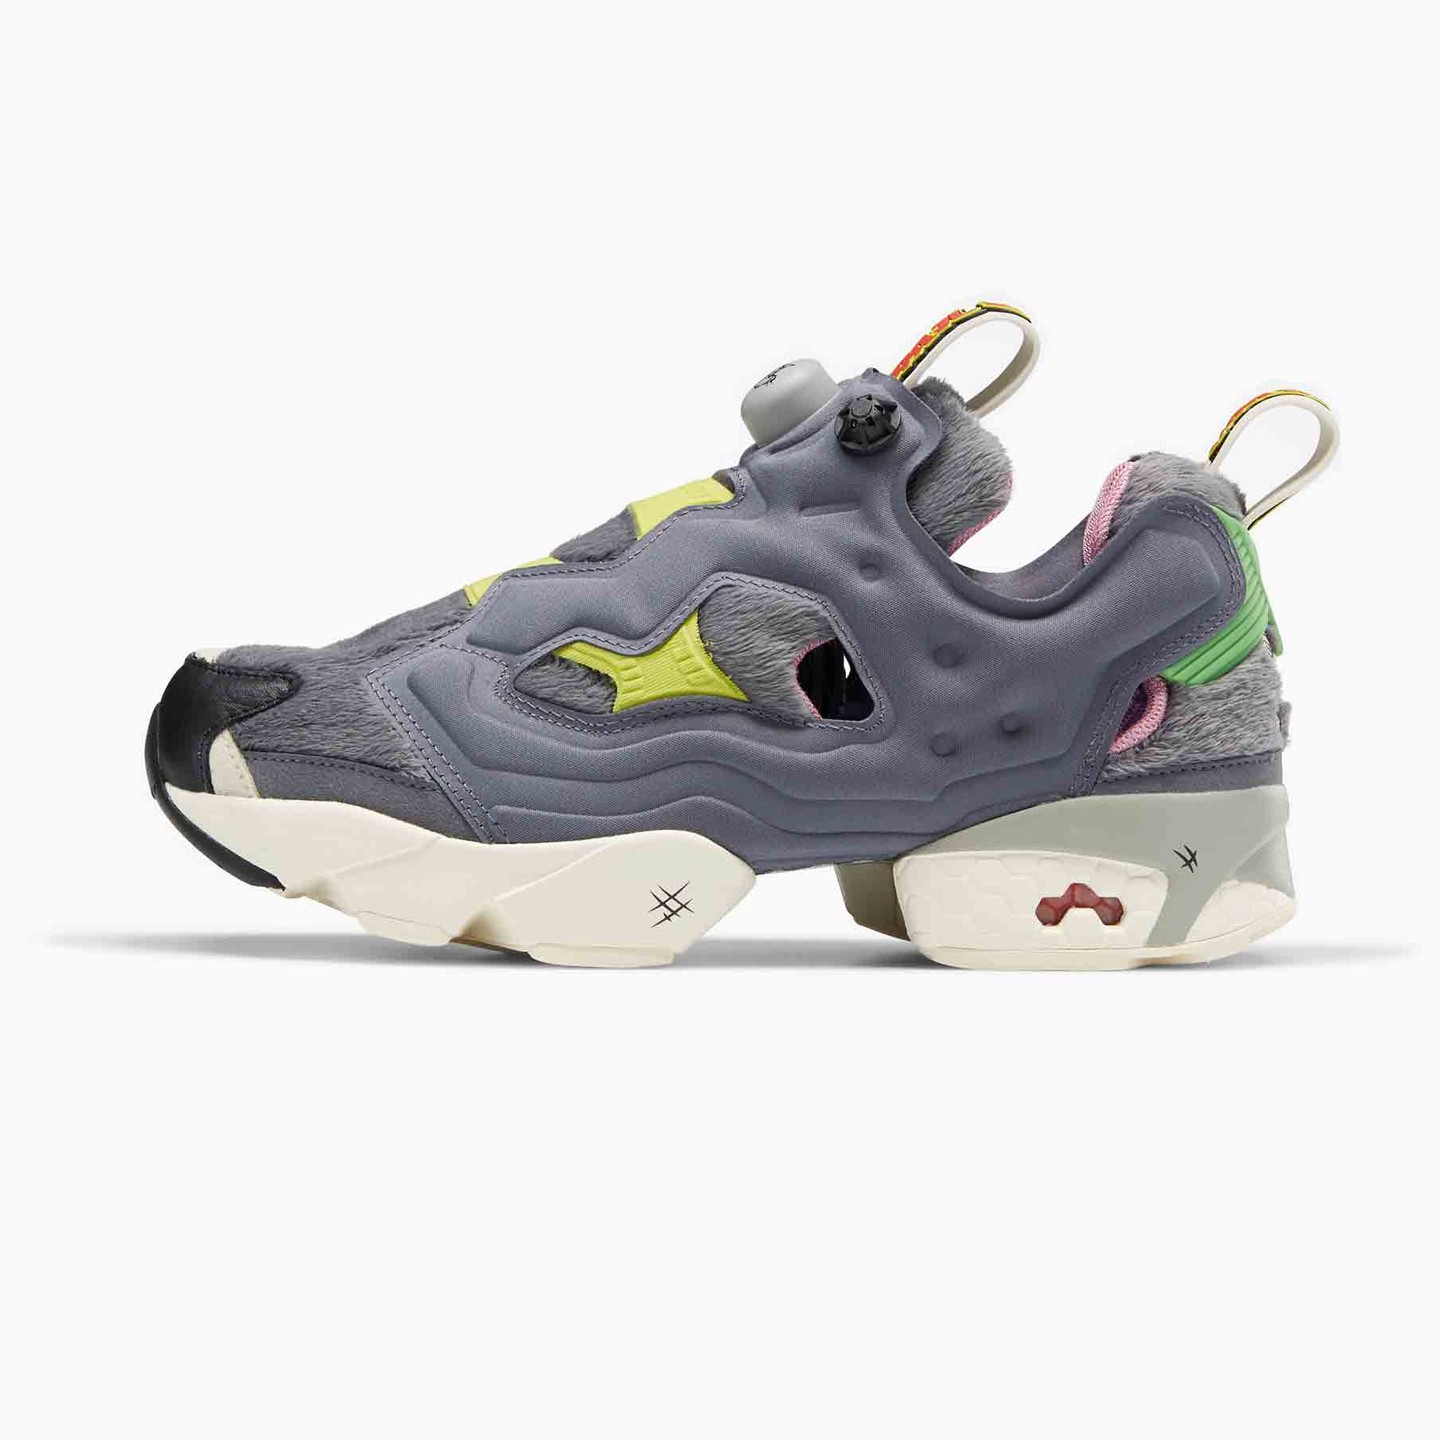 Reebok Instapump Fury 'Tom & Jerry' Cold Grey / Hero Yellow / Black FW4656